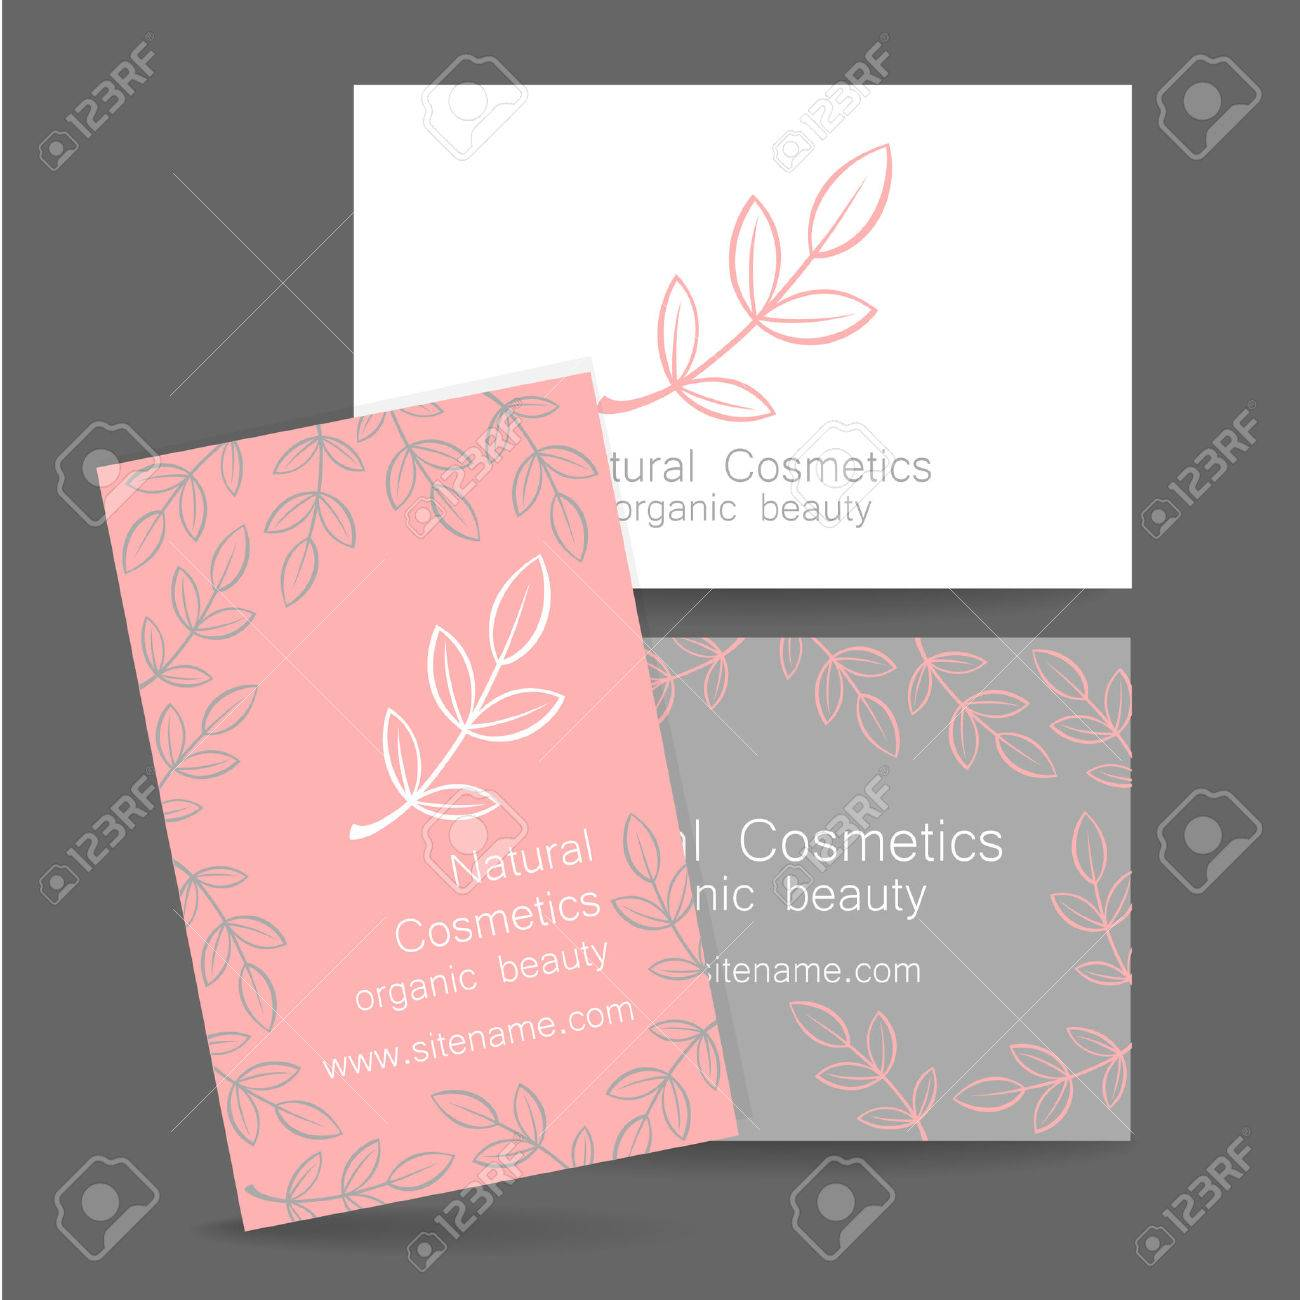 Natural cosmetics logo template design for organic bio products natural cosmetics logo template design for organic bio products presentation of the business card colourmoves